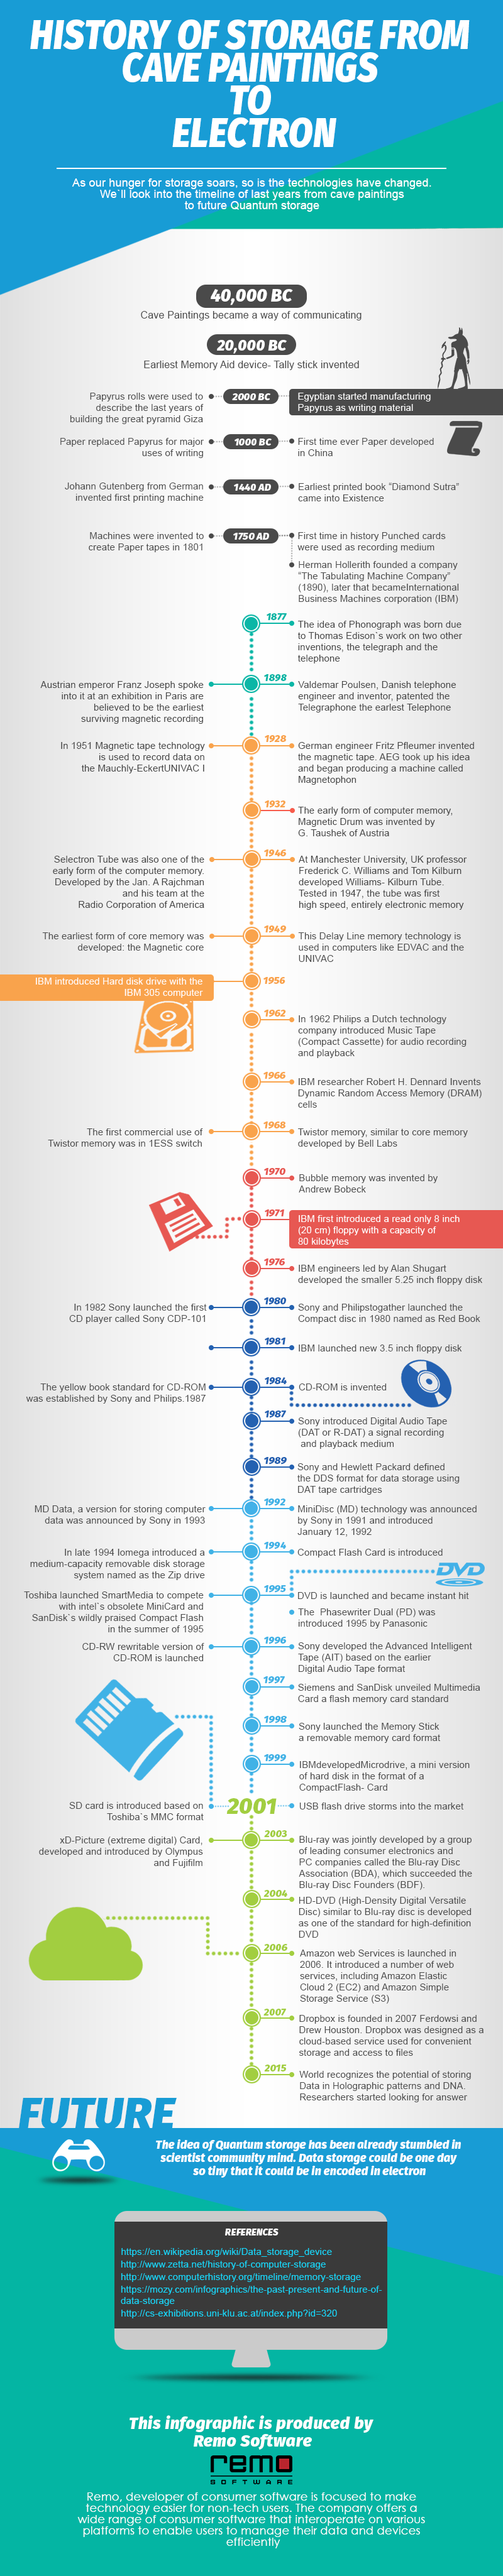 Infographic on history of storage